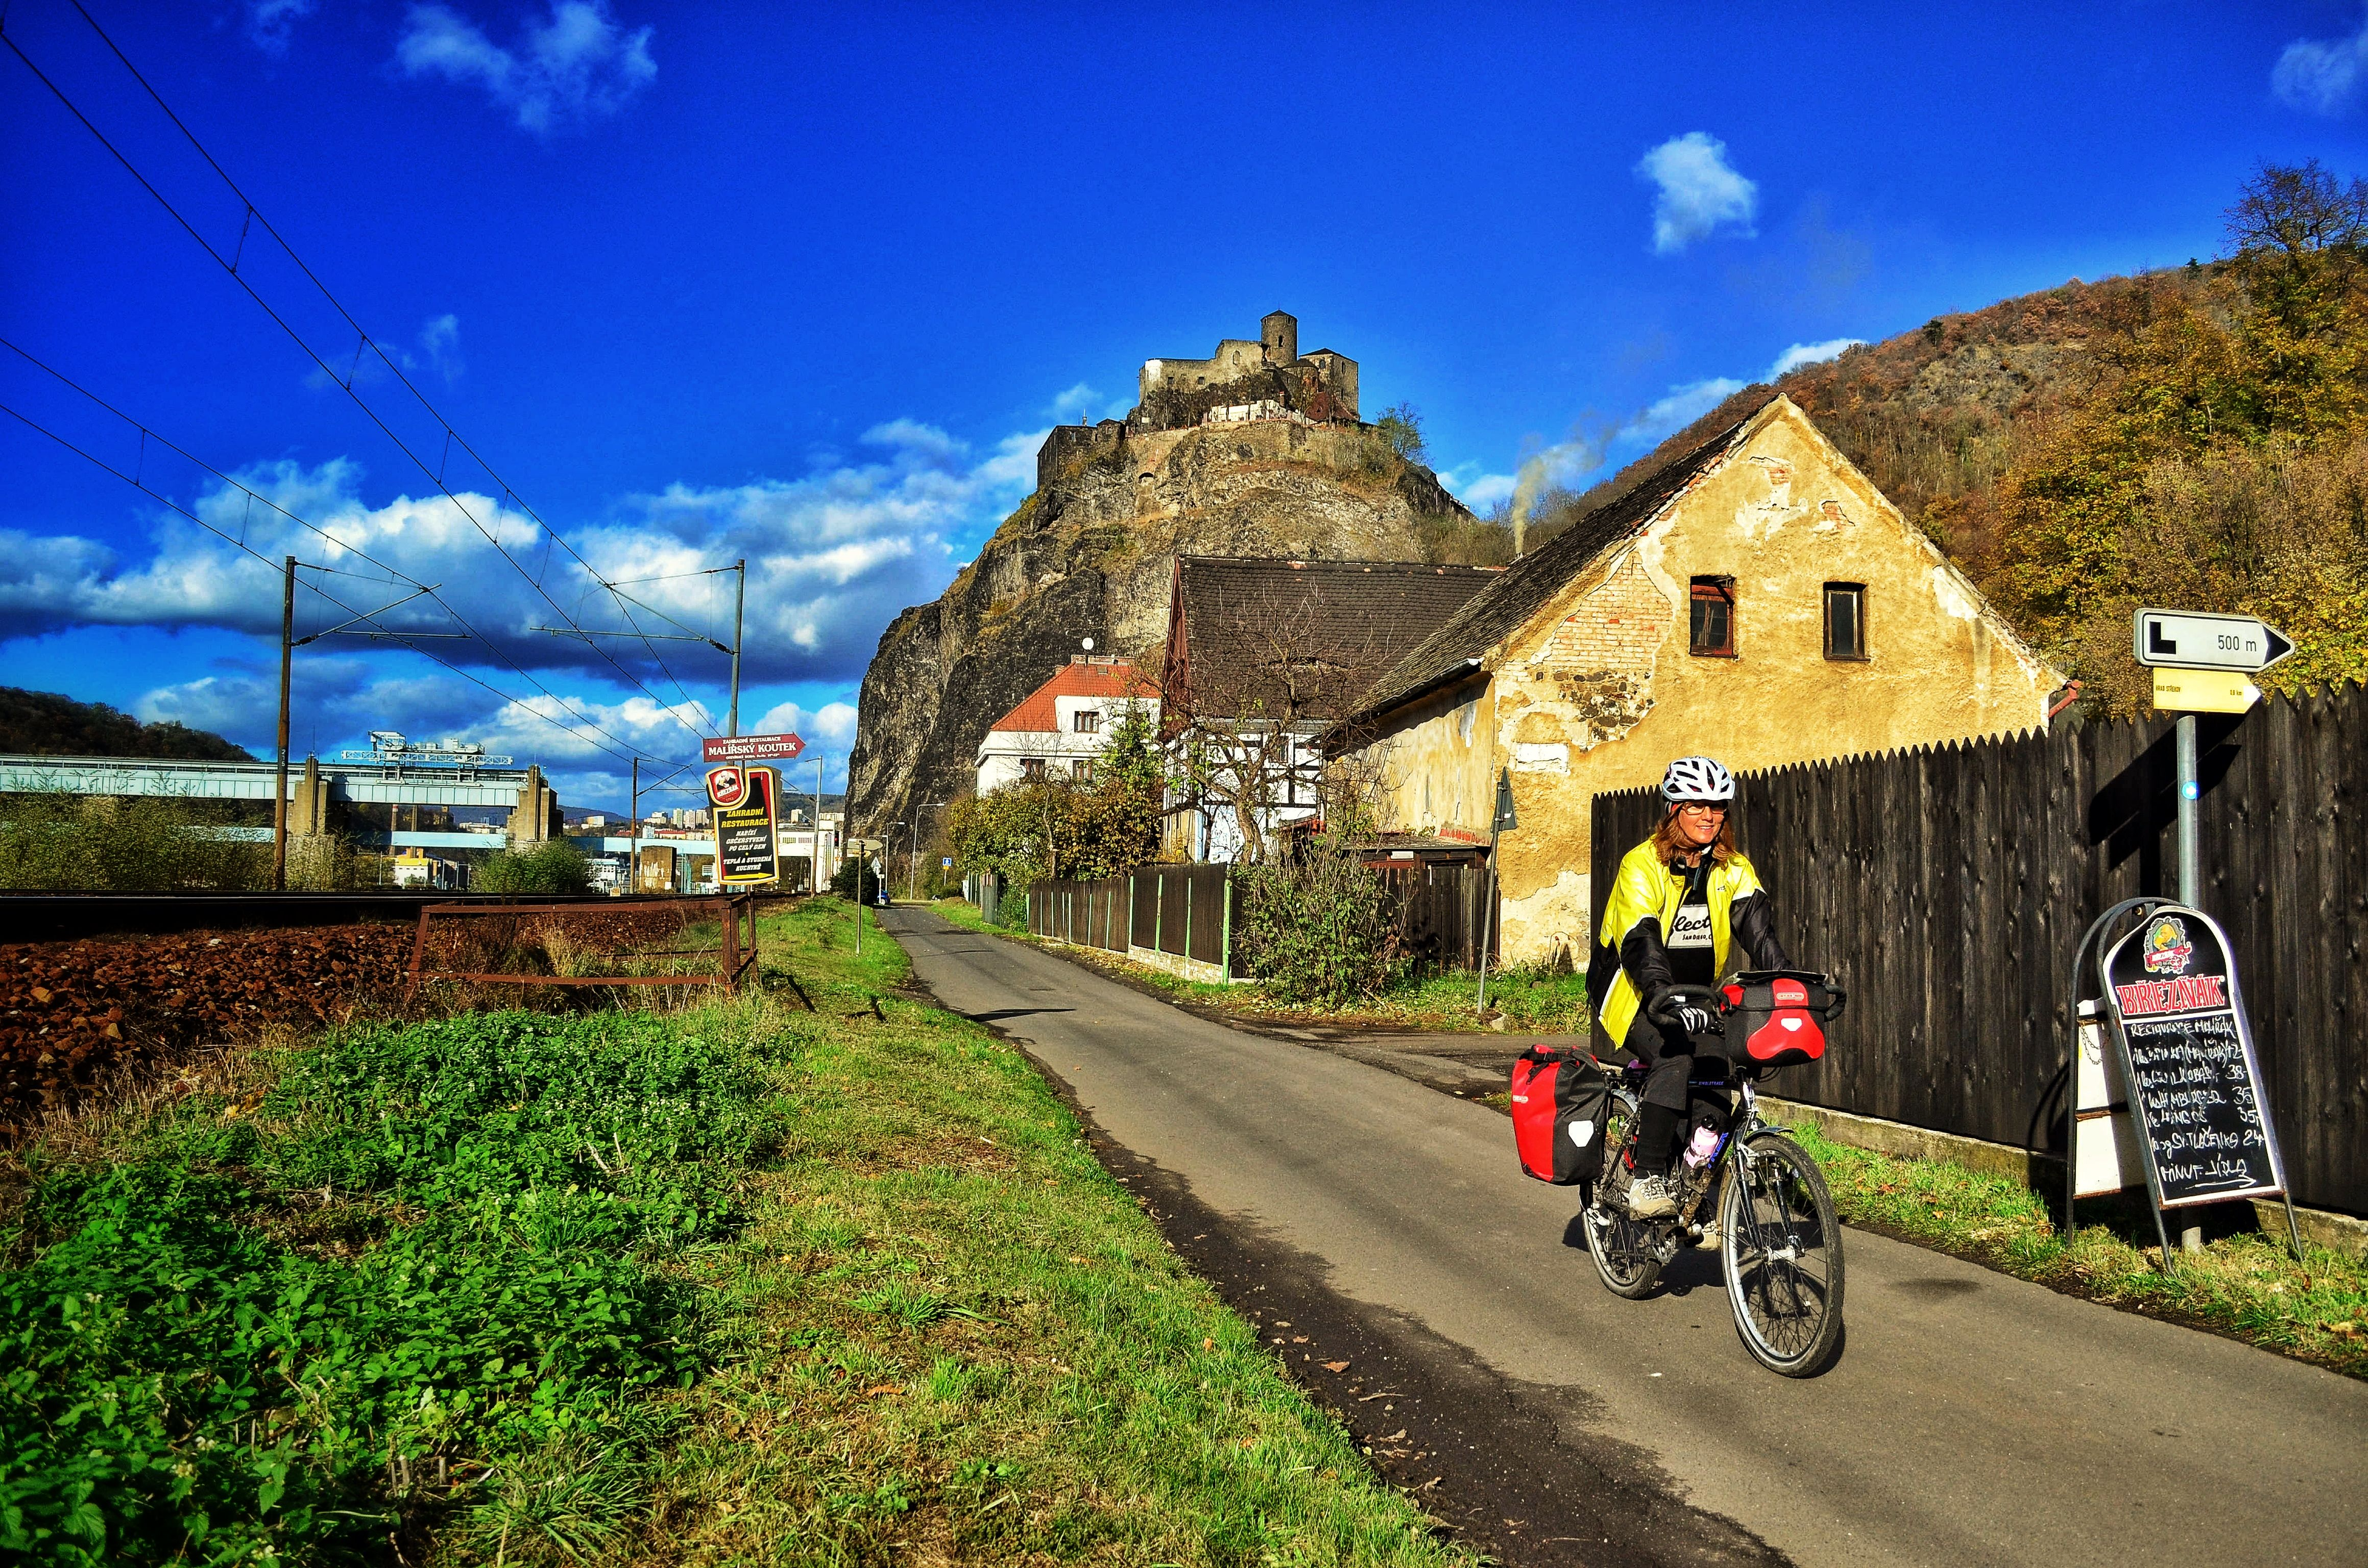 elberadweg; bike touring; multi-modal bicycle travel; czech republic cycling